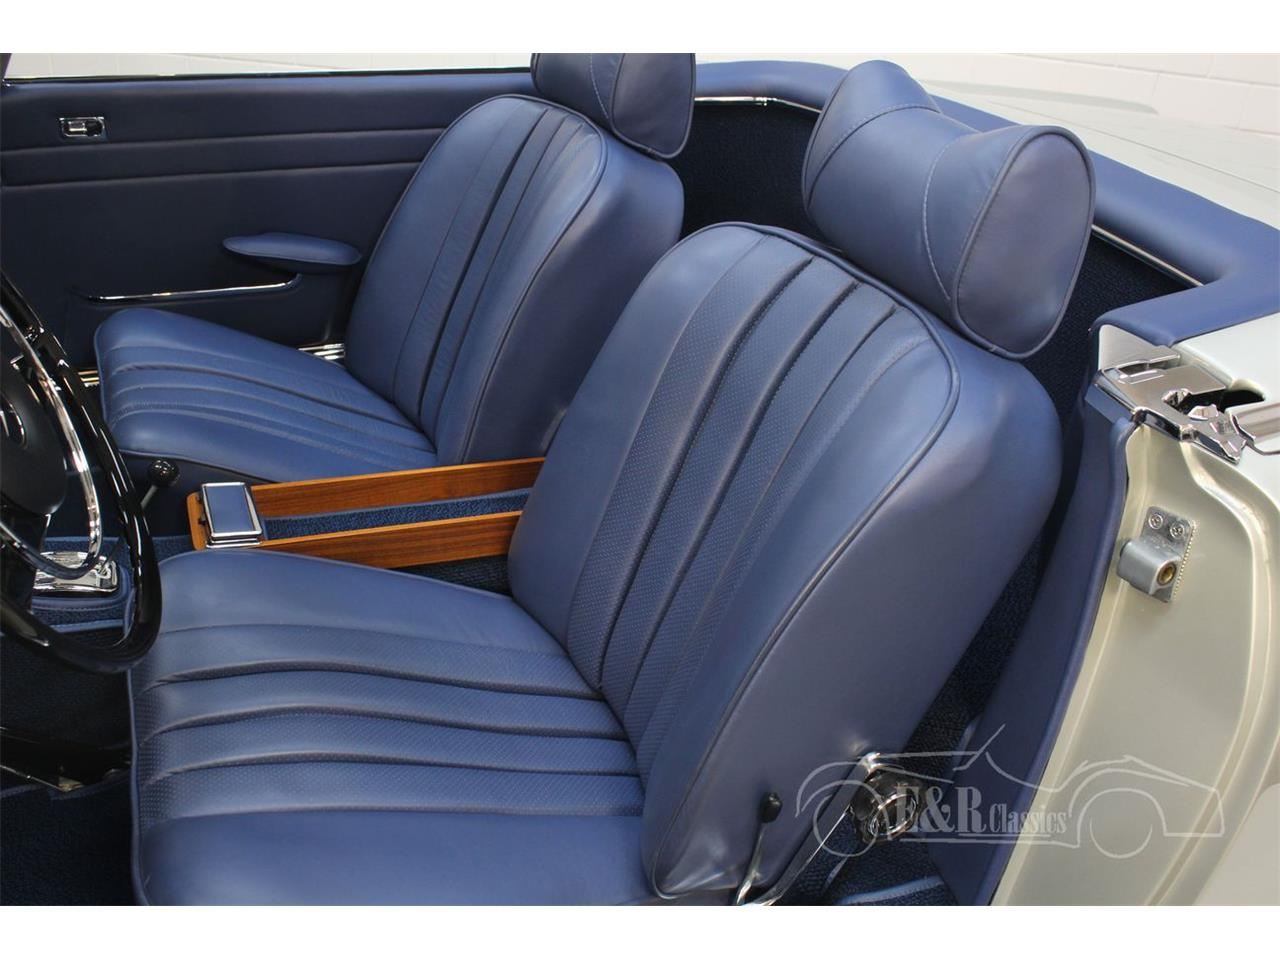 Large Picture of Classic '69 Mercedes-Benz 280SL Offered by E & R Classics - Q9A0